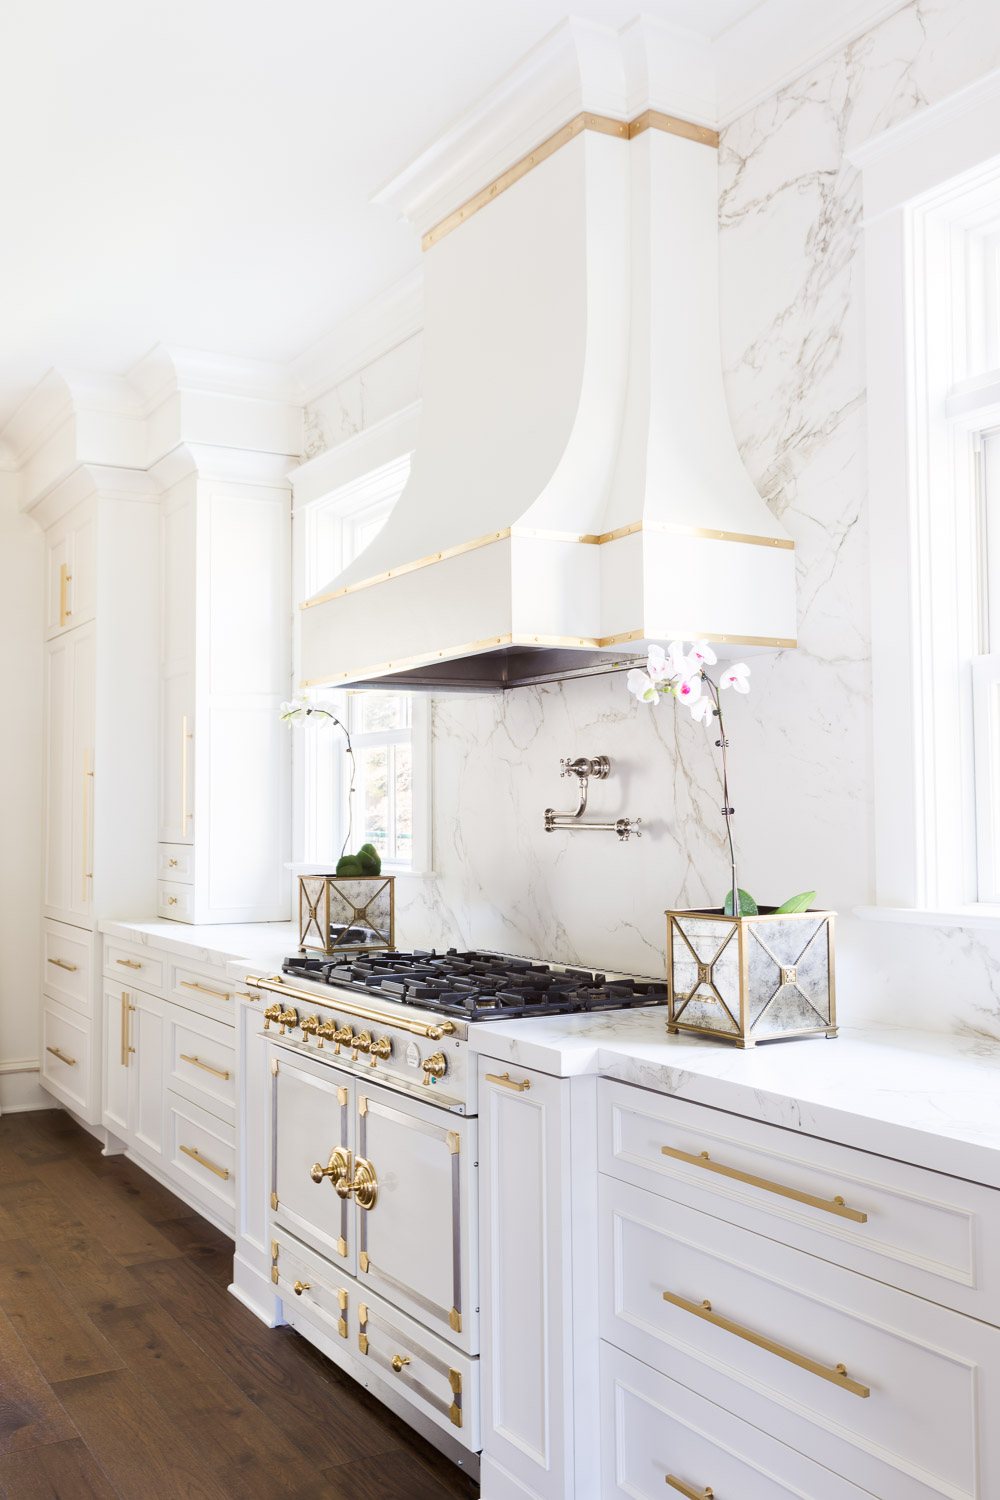 Kitchen Design by Laura Burleson / Photo by Alyssa Rosenheck